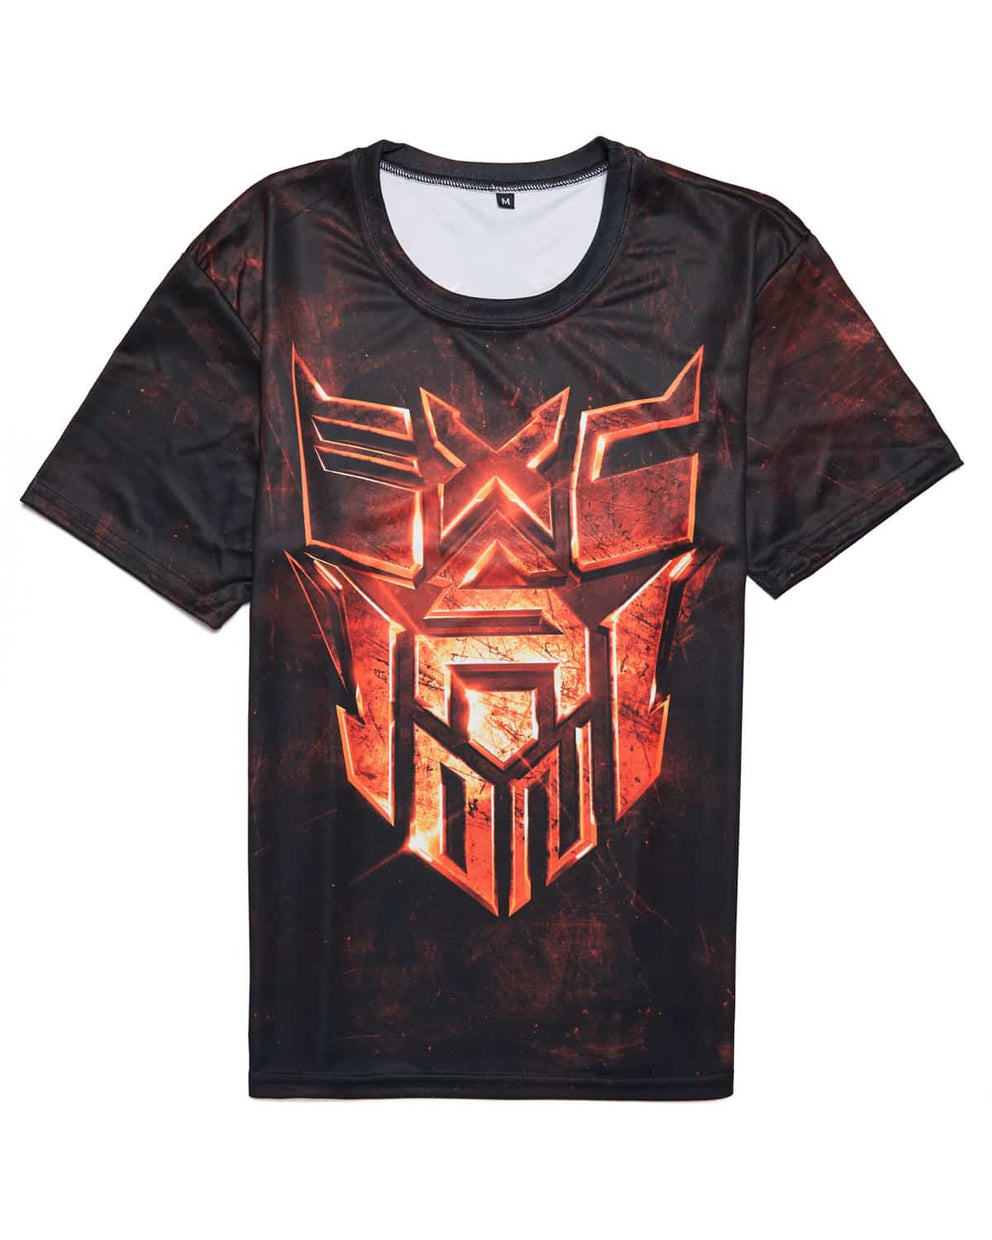 Excision 'Decepticon' Unisex T-Shirt - Ruby